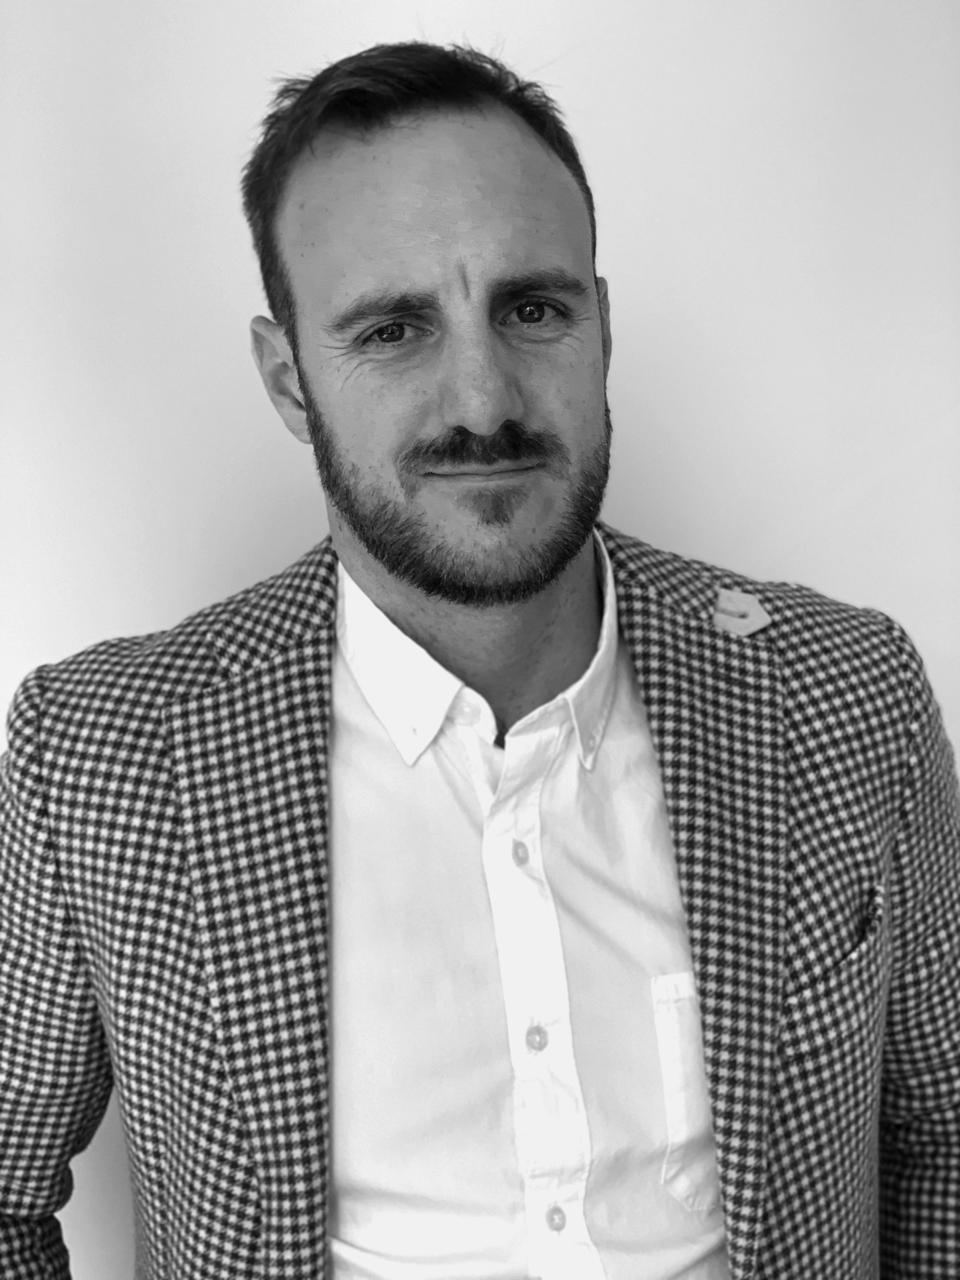 Lee Kelsall, CEO of the Ker & Downey Africa Group